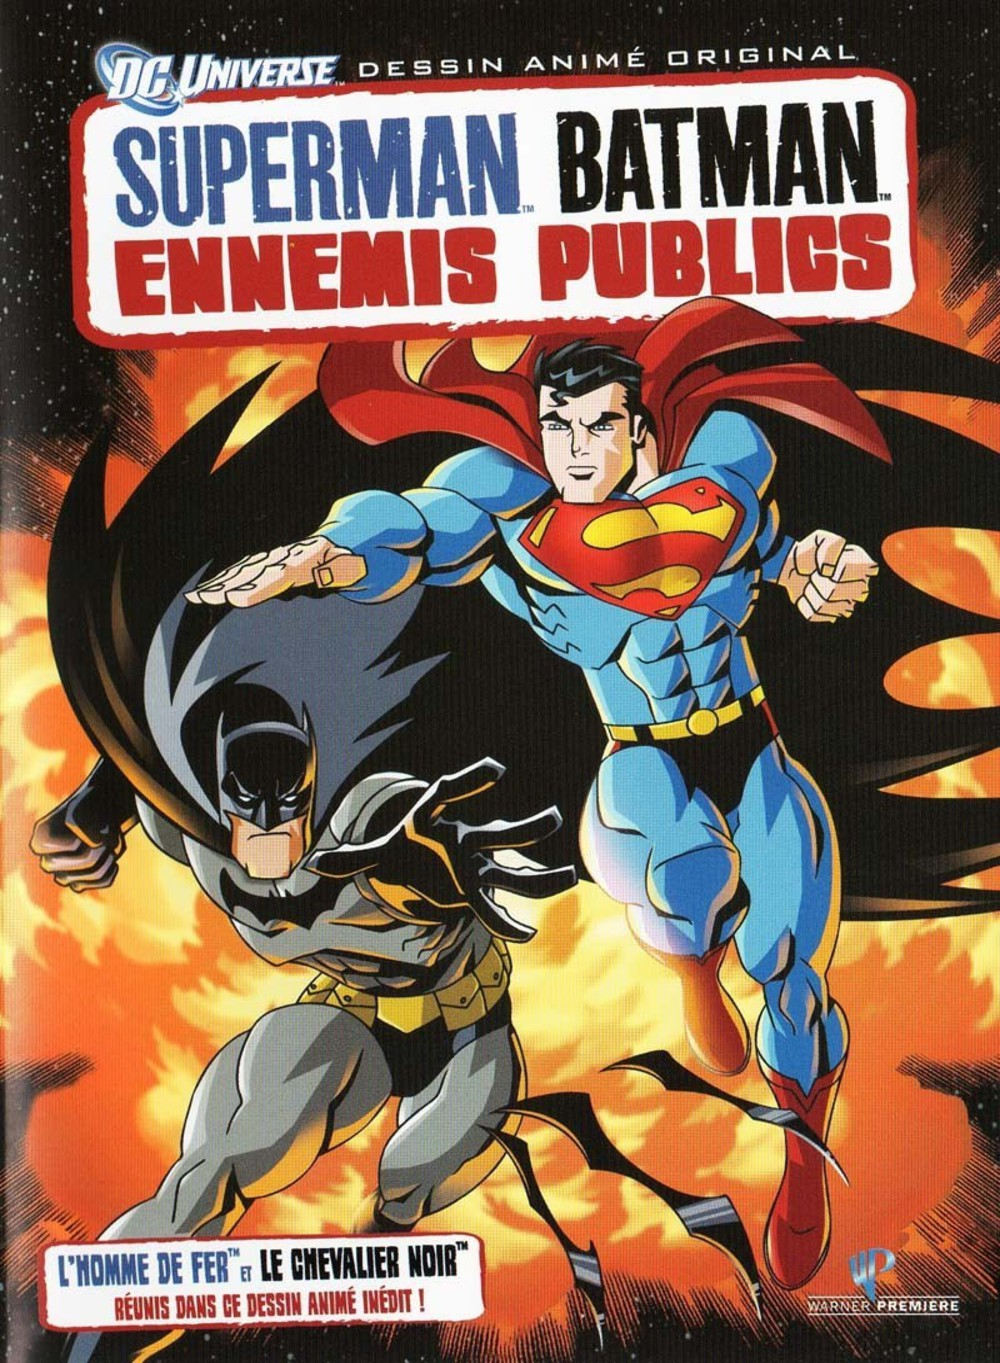 affiche du film Superman / Batman : Ennemis publics